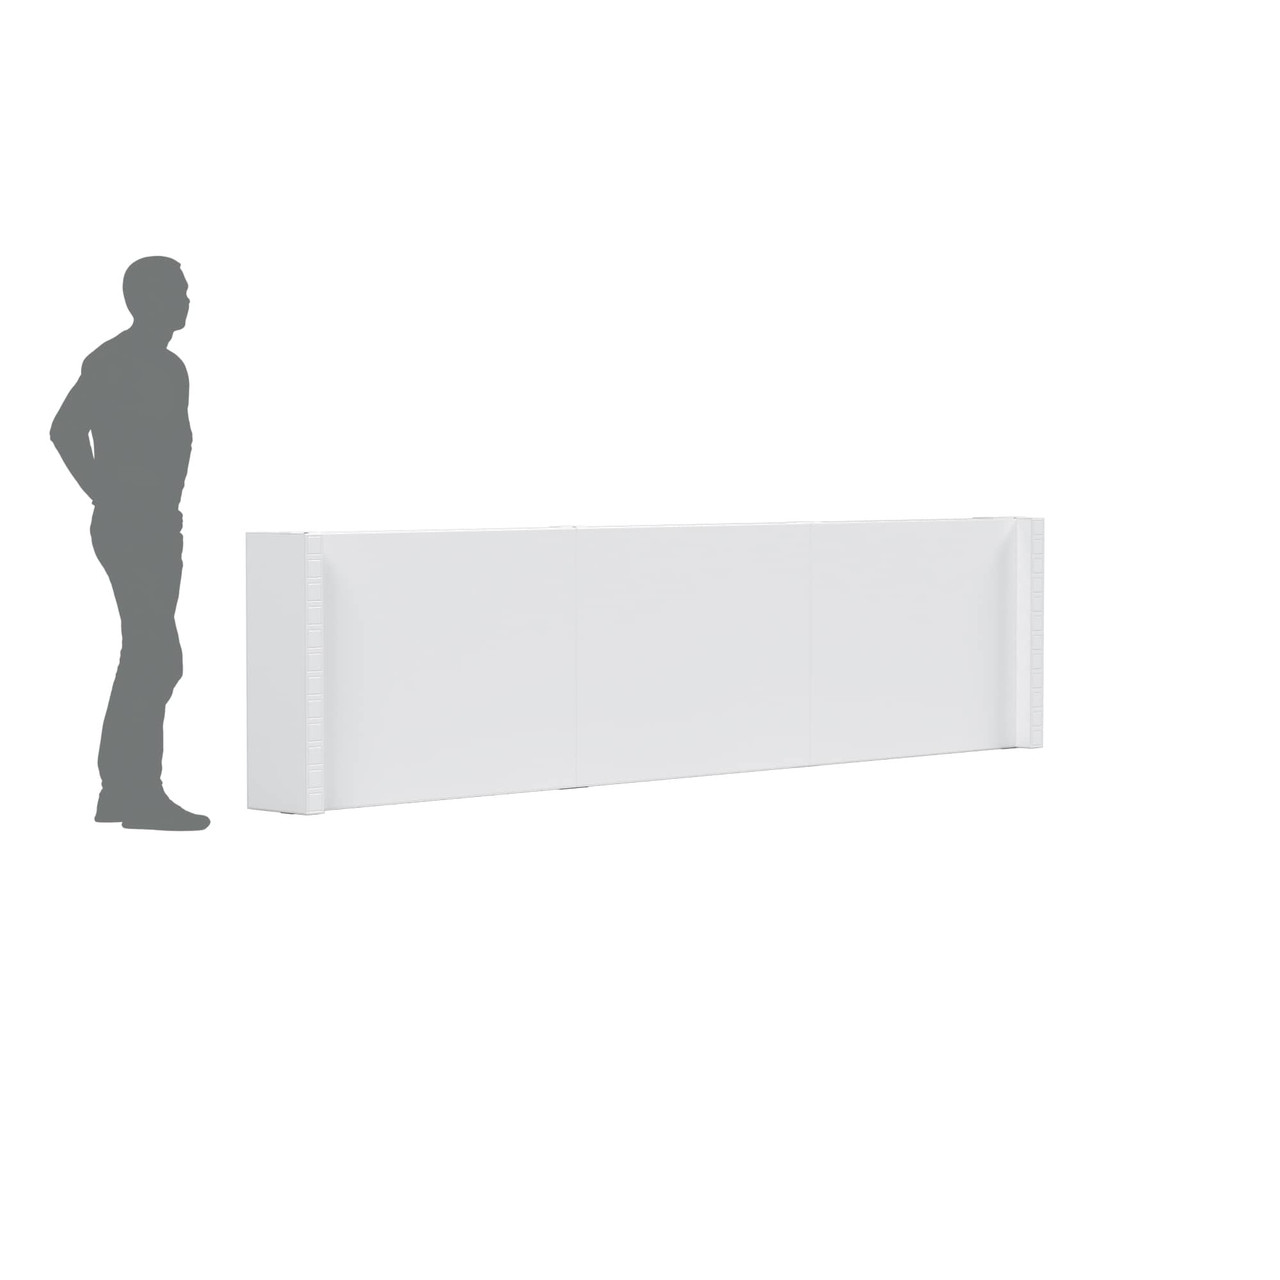 The EverPanel Pony Wall Kit is a great solution for controlling the flow of pedestrian traffic.